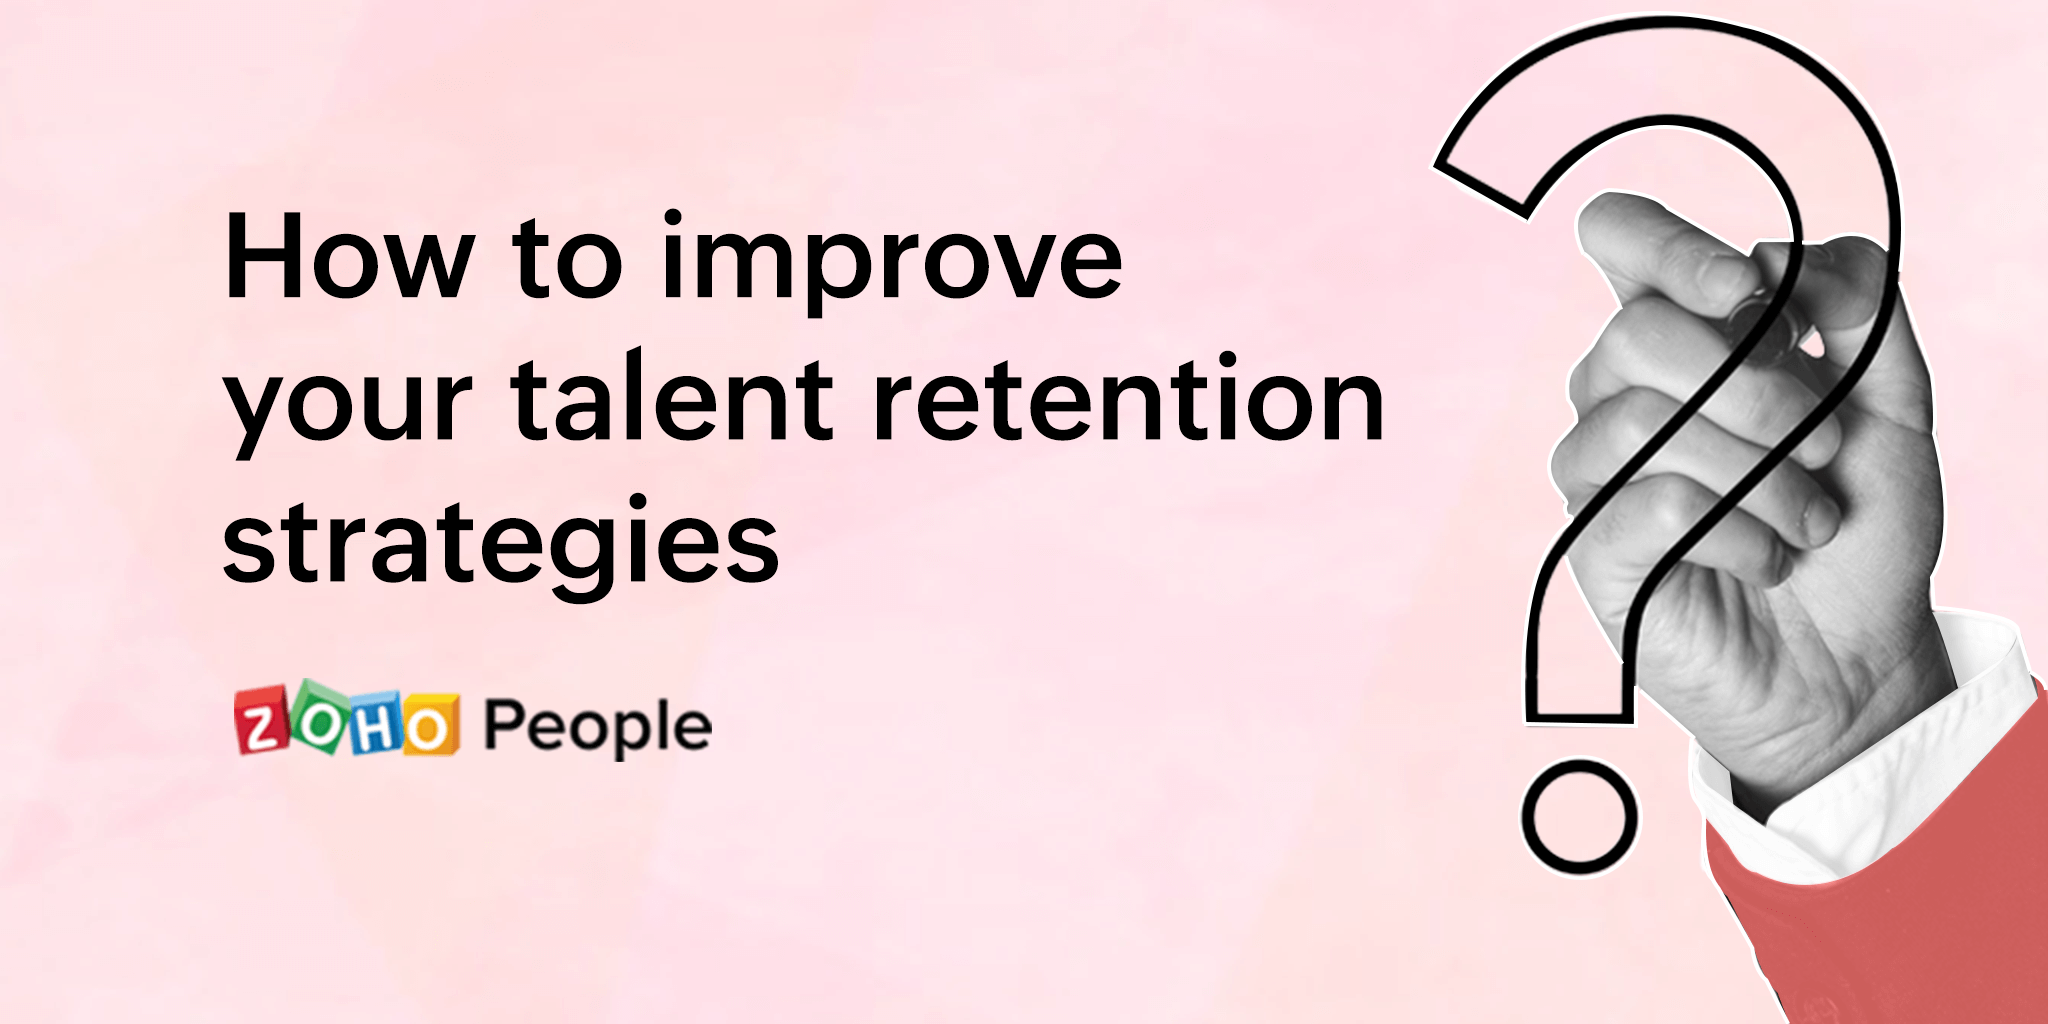 How to upgrade your talent retention strategies